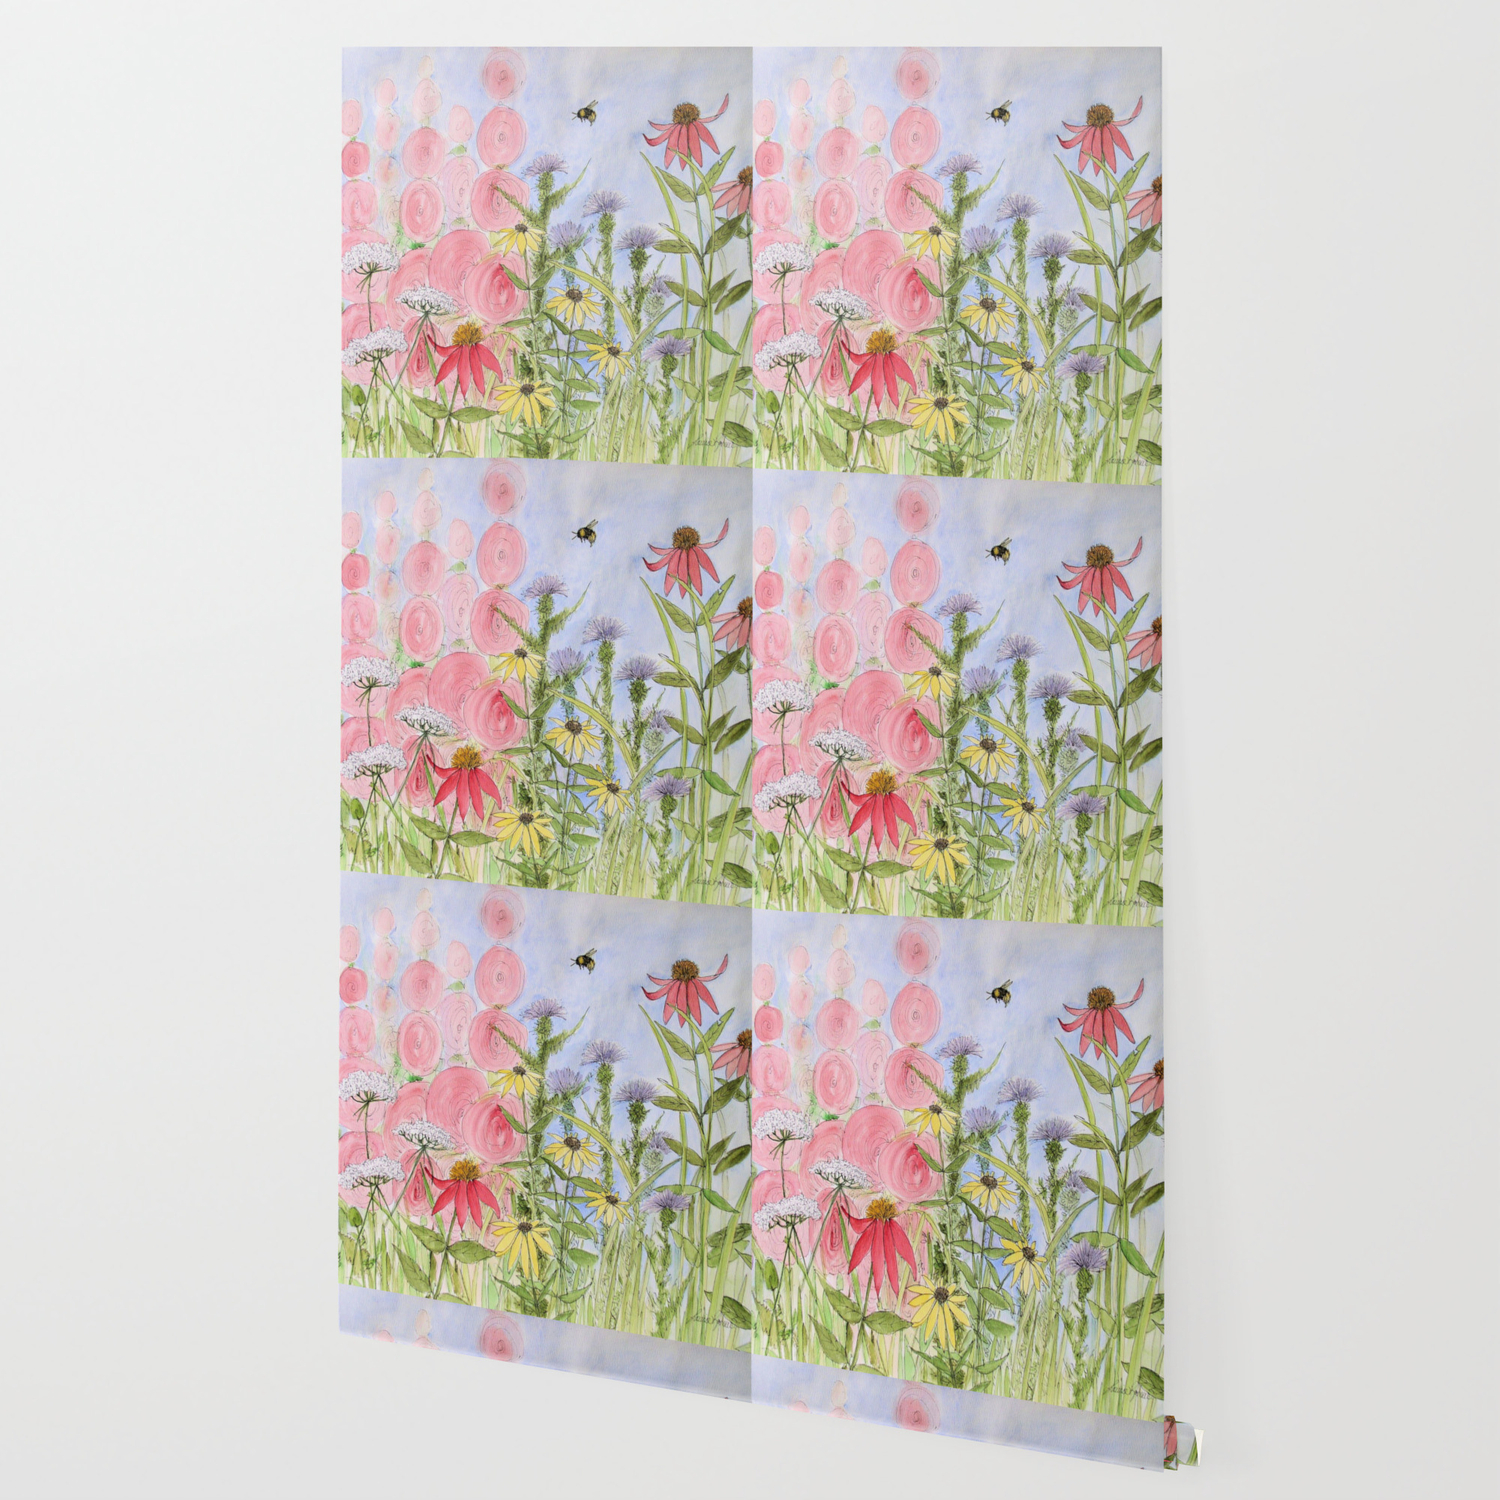 Botanical Floral Watercolor Pink Blue Yellow Flowers Blue Skies